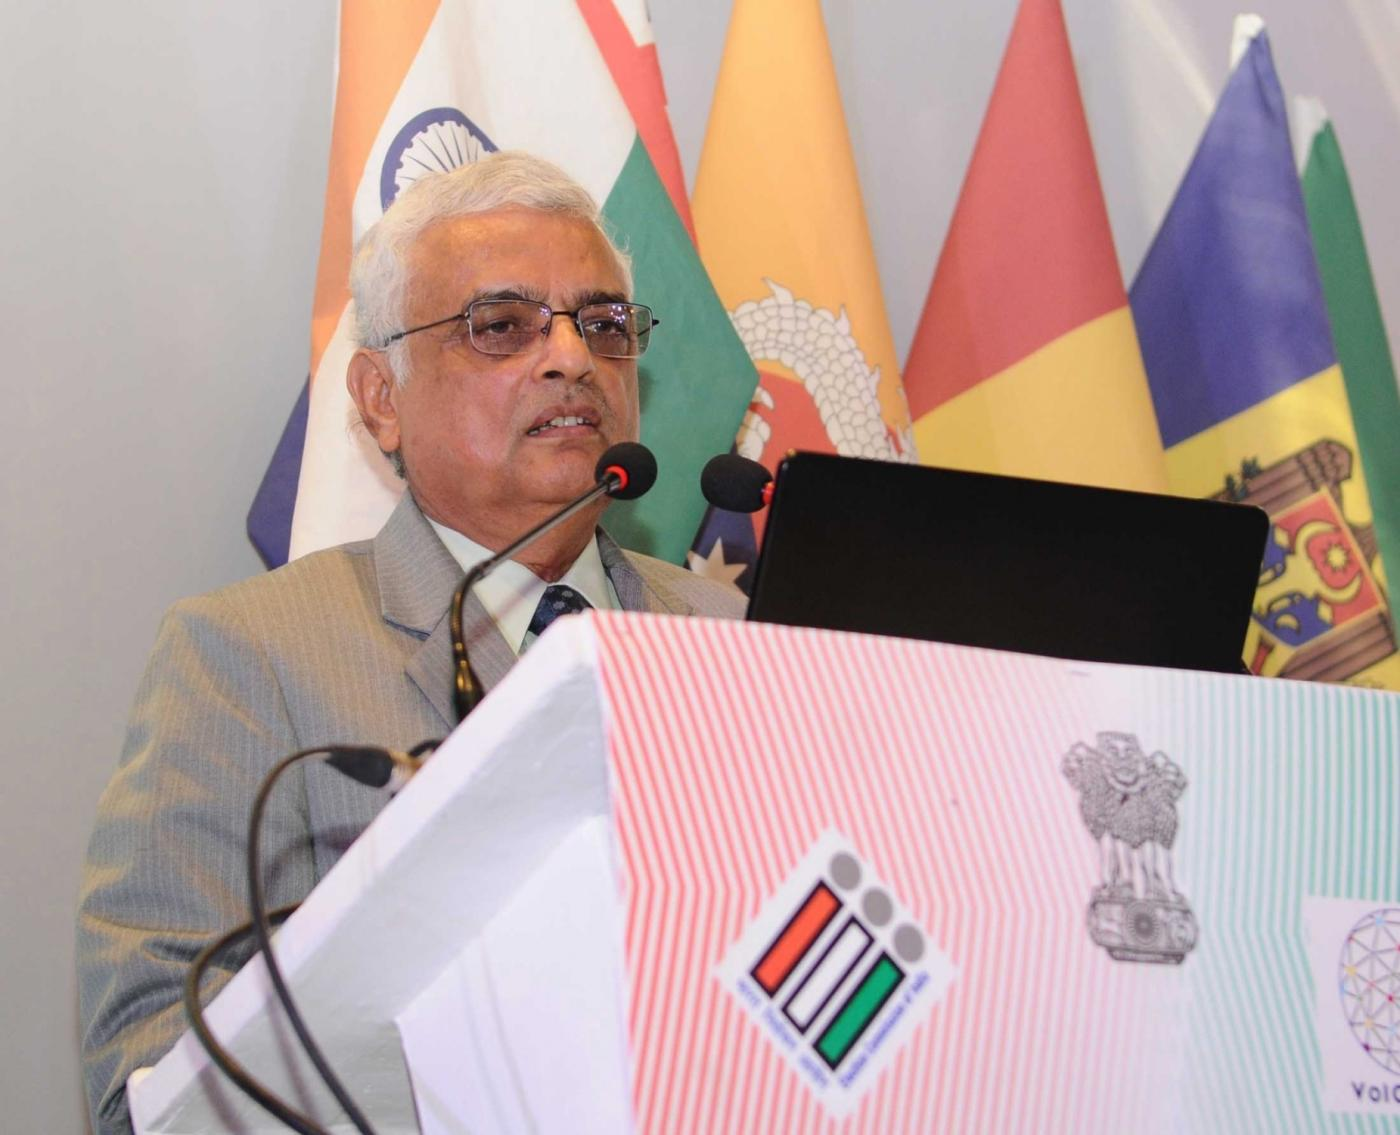 New Delhi: Chief Election Commissioner O.P. Rawat addresses at the International Conference on 'Inclusion of Persons with Disabilities in Electoral Process' in New Delhi on Jan 24, 2018. (Photo: IANS/PIB) by .